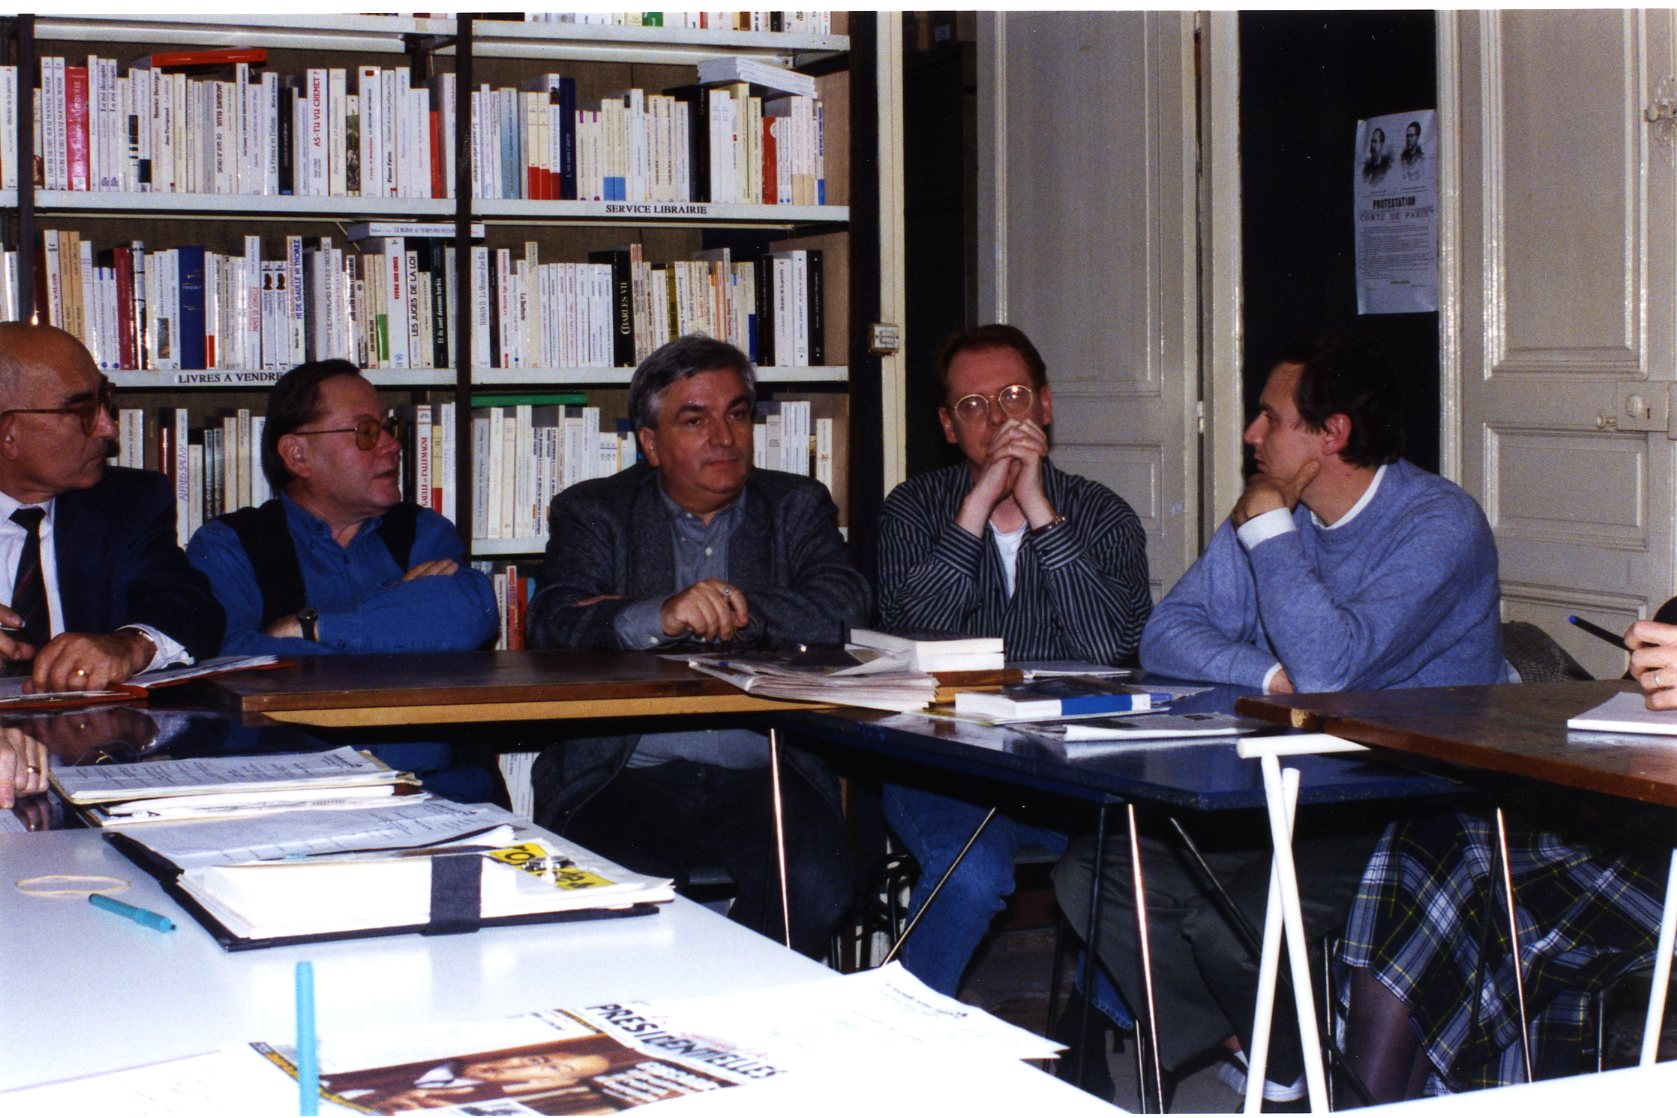 Georges Dorso, Philippe Beaume, Patrick Isambert, Denis Matton, Axel (...)